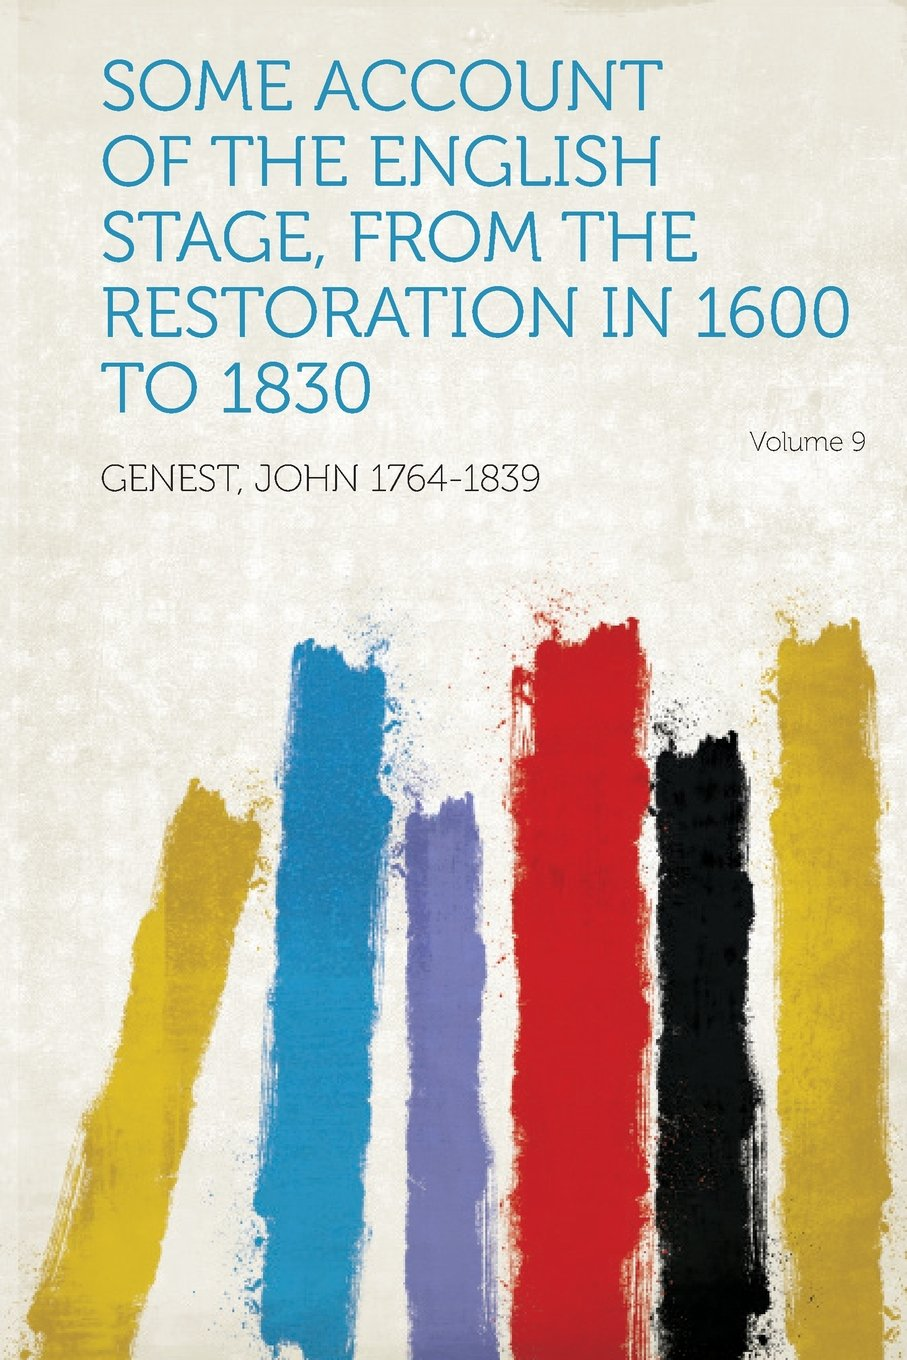 Some Account of the English Stage, from the Restoration in 1600 to 1830 Volume 9 ebook